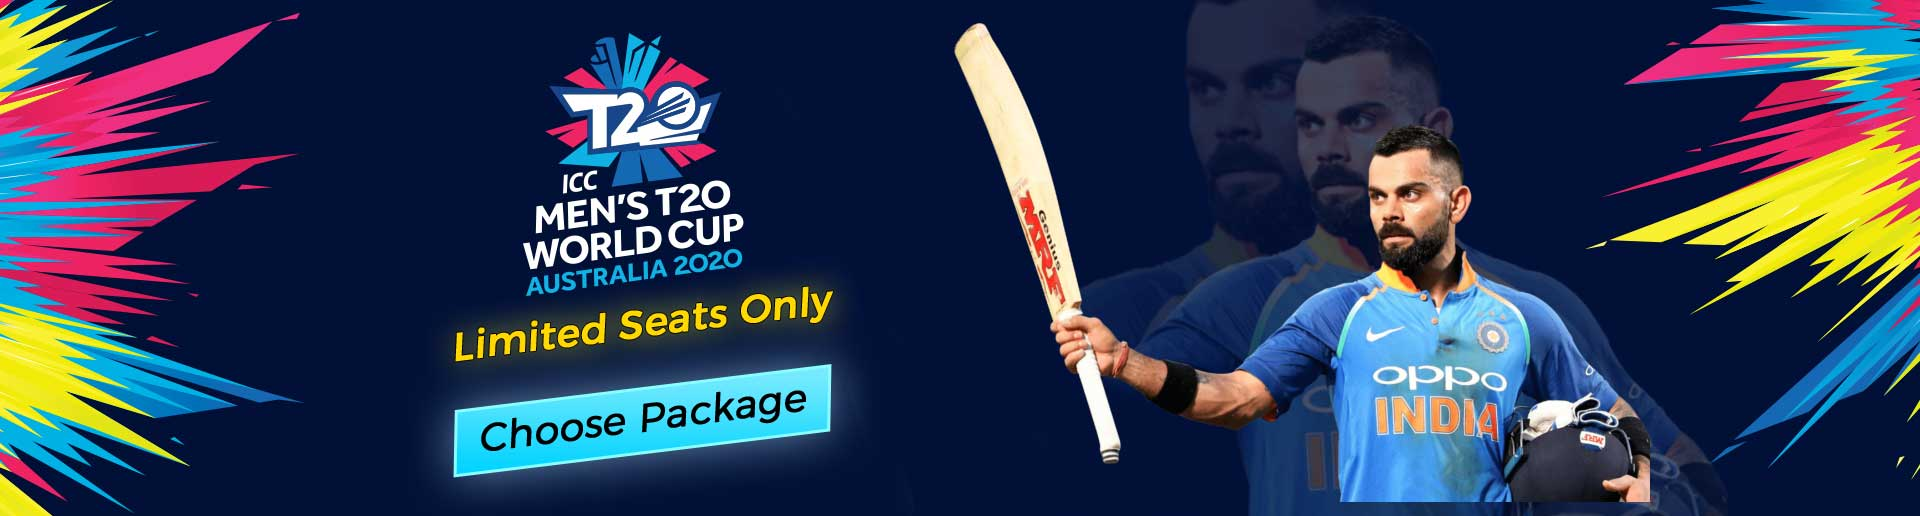 t20-world-cup-australia-2020-packages